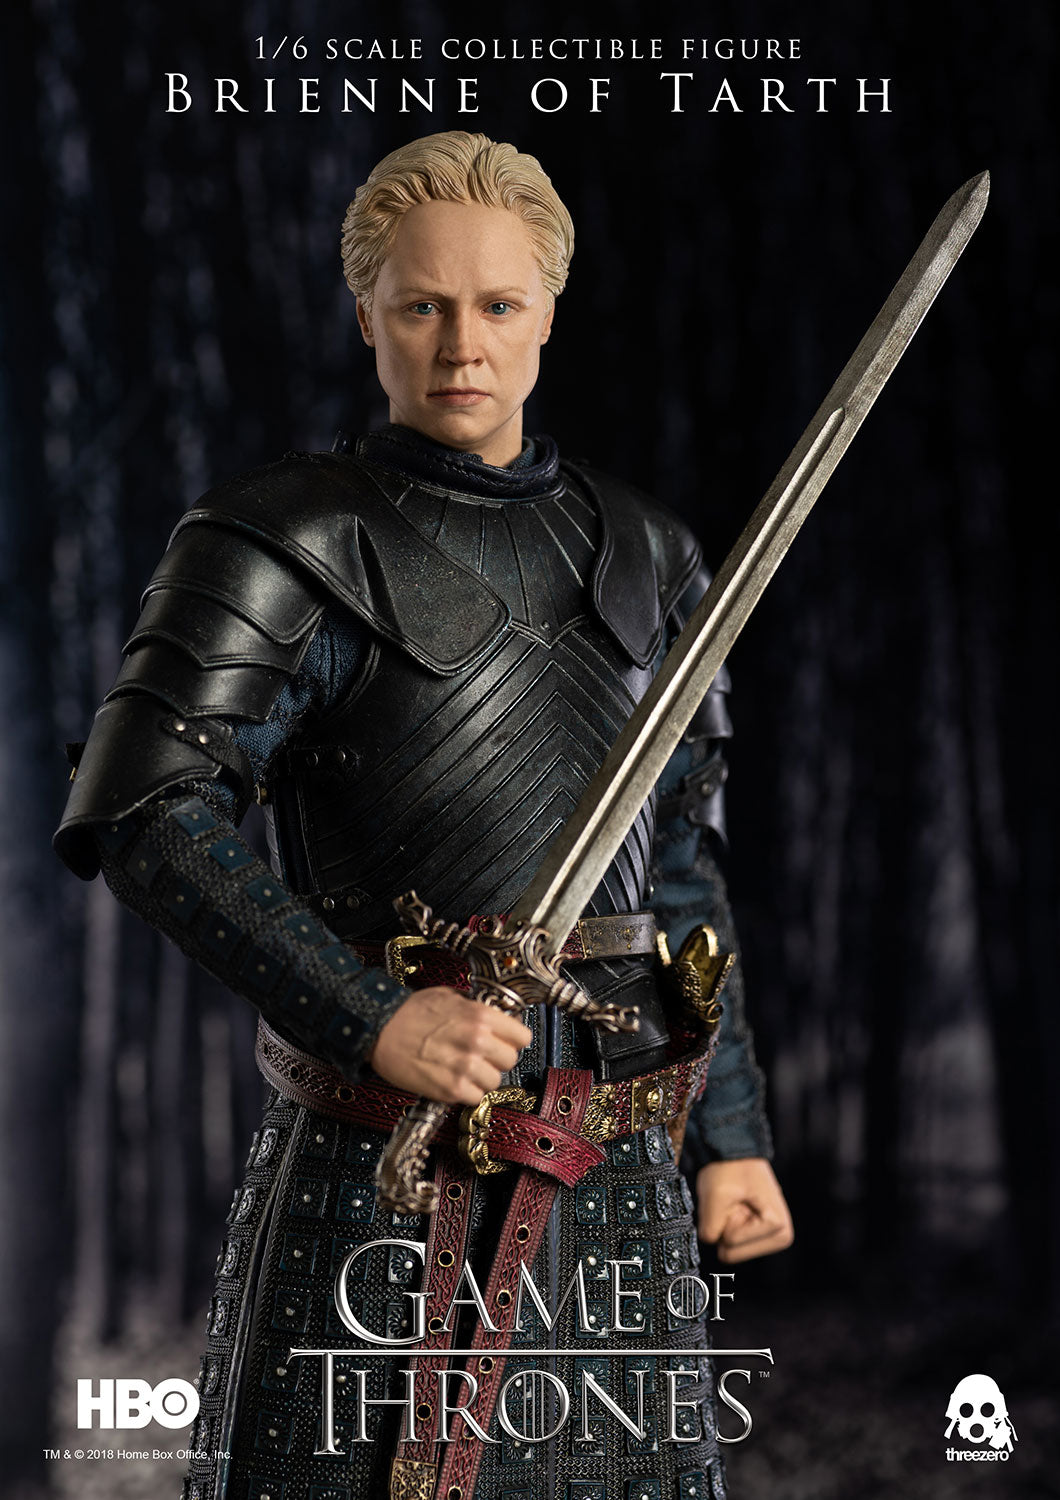 ThreeZero - Game of Thrones (Season 7) - Brienne of Tarth (Standard) (1/6 Scale)